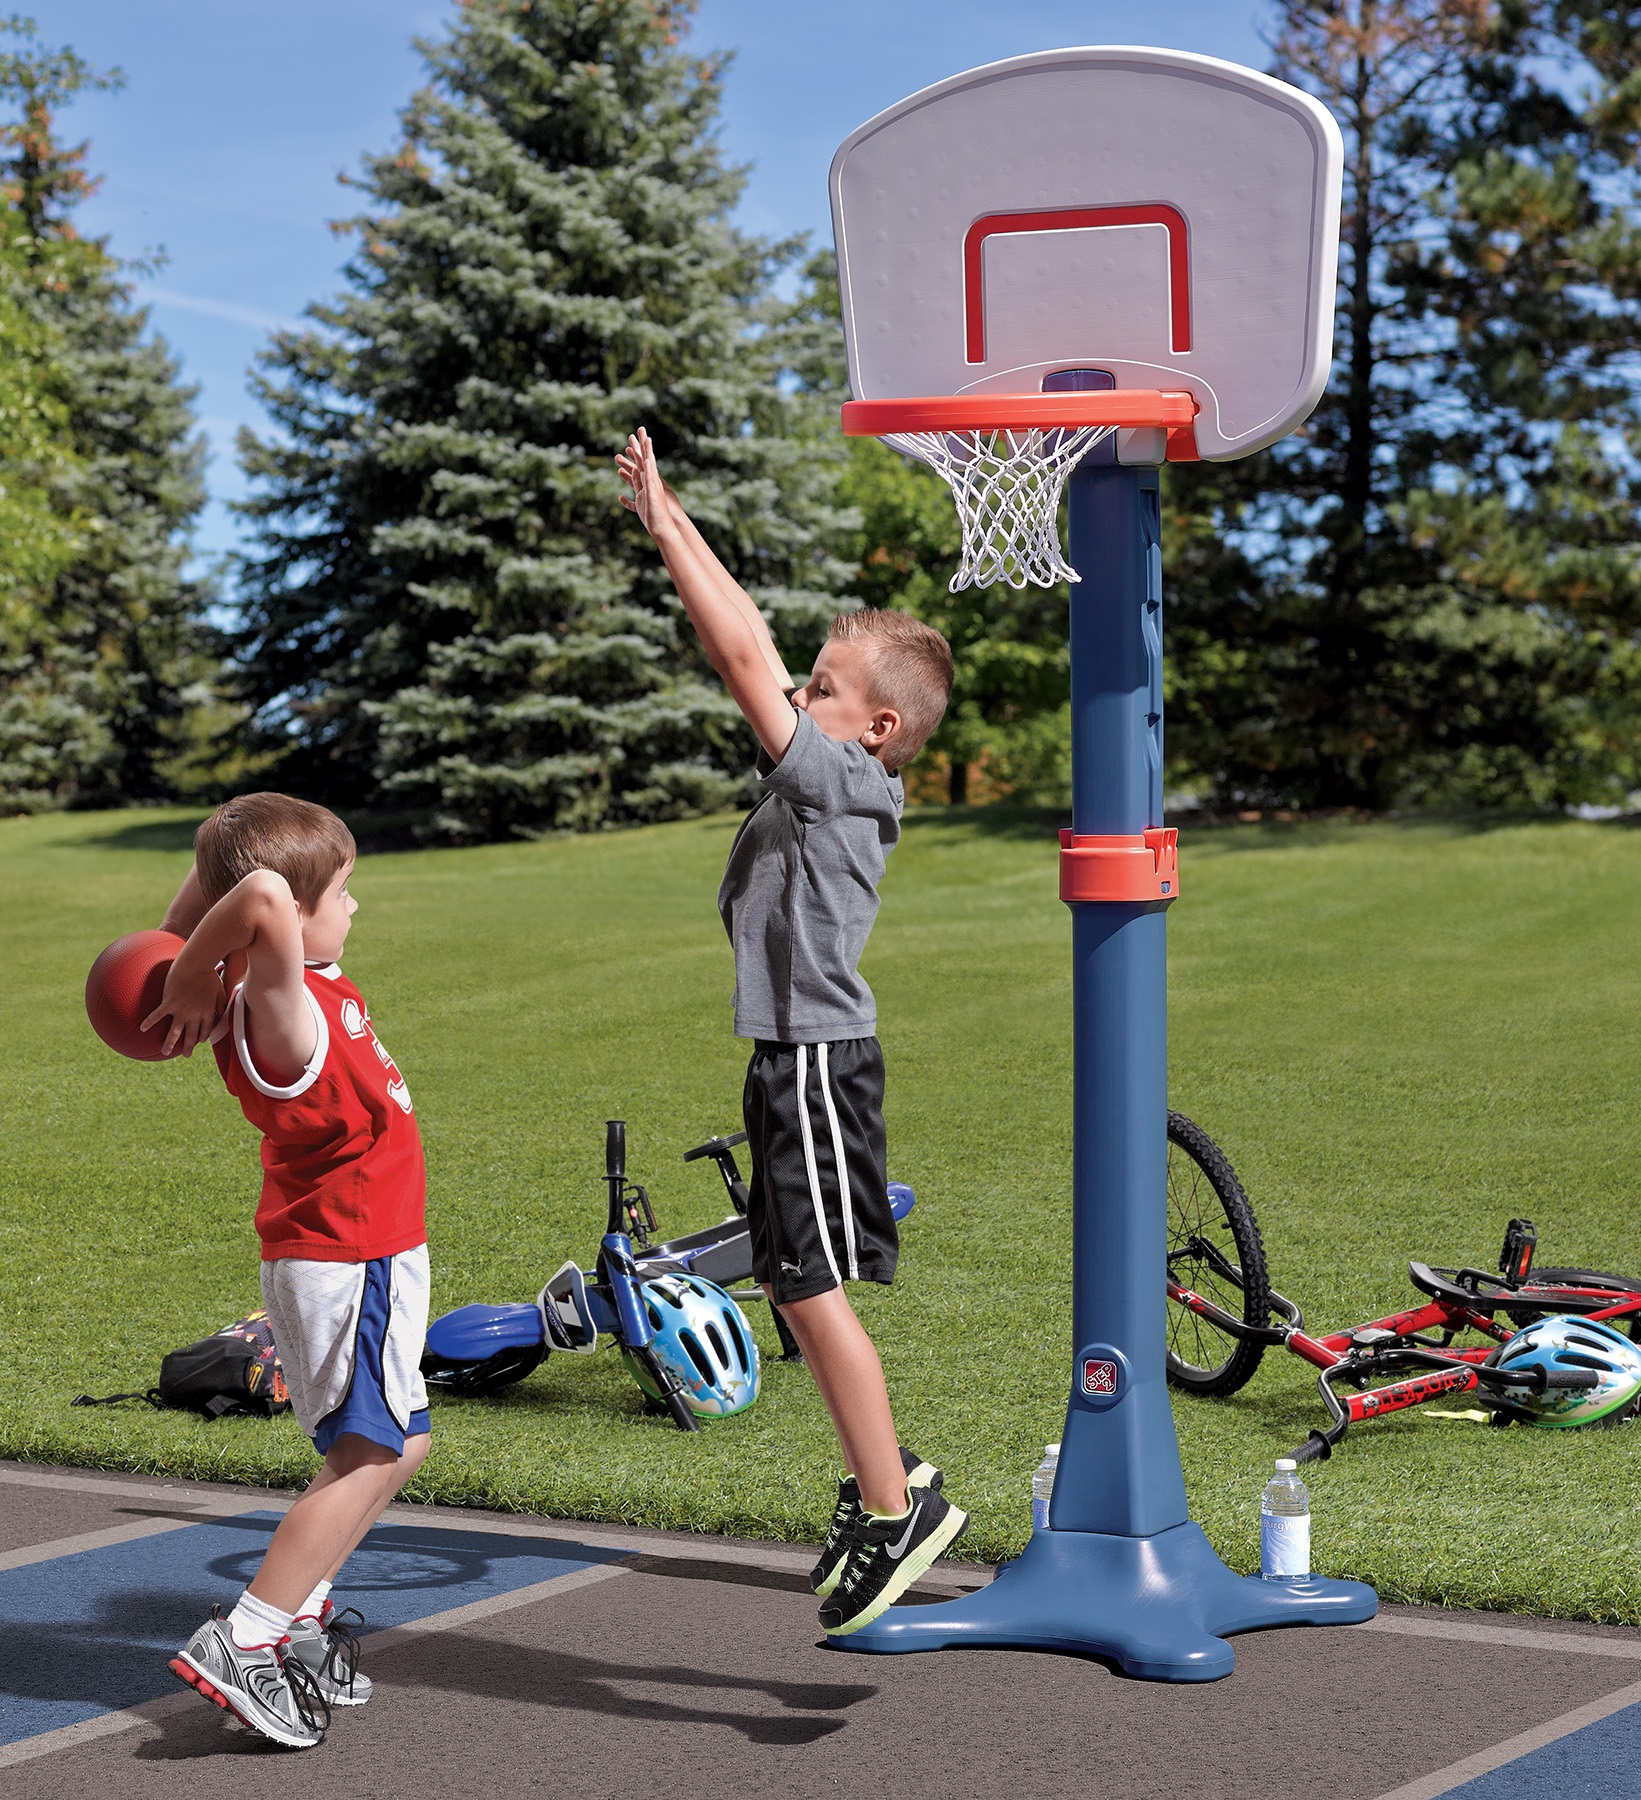 How To Teach Kids To Play Baskect Ball